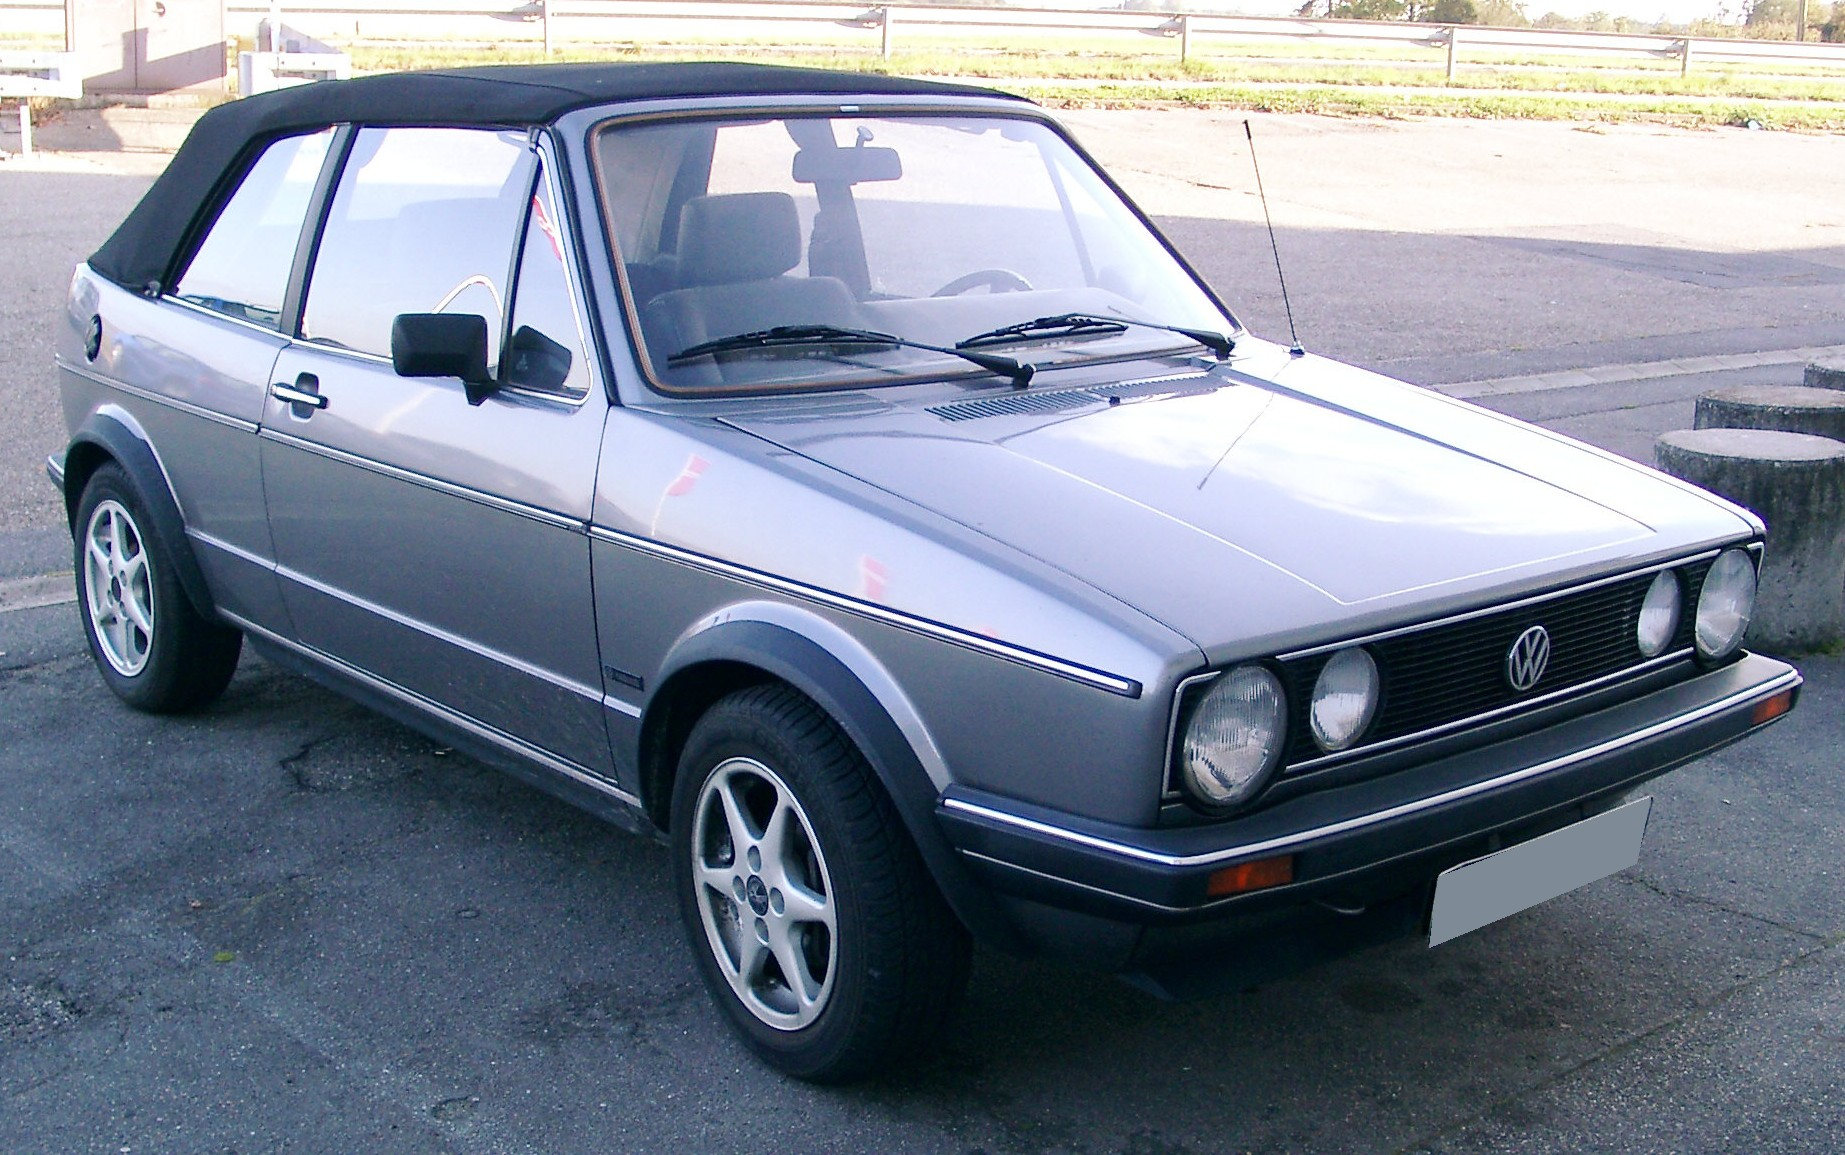 file vw golf 1 cabrio front wikimedia commons. Black Bedroom Furniture Sets. Home Design Ideas